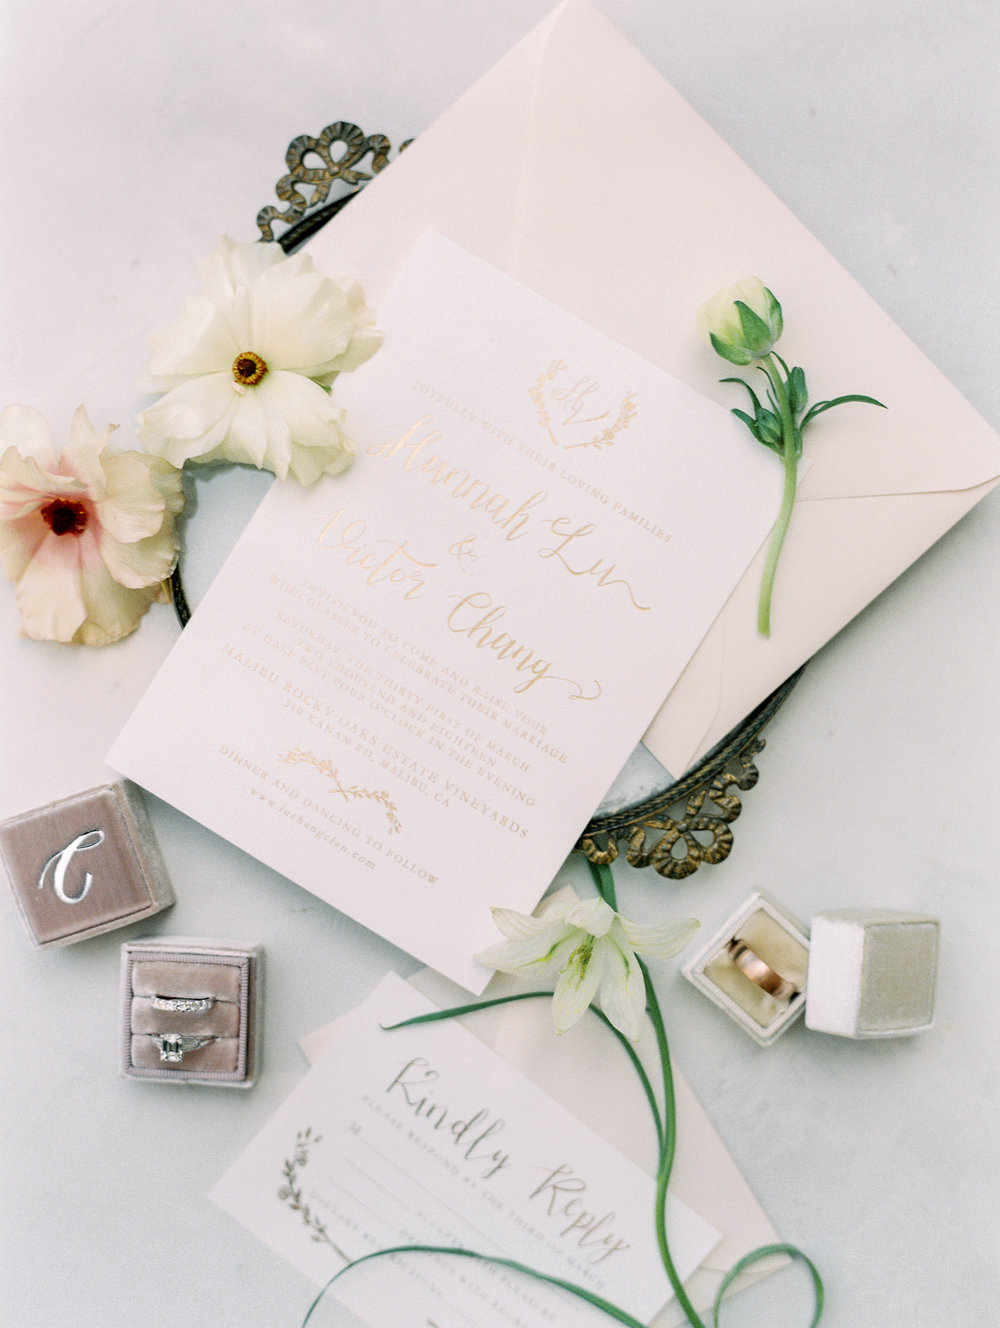 Spring Wedding at Romantic Hilltop Vineyard Malibu Rocky Oaks Sally Pinera Finding Flora Wedding Invites So Happi Together